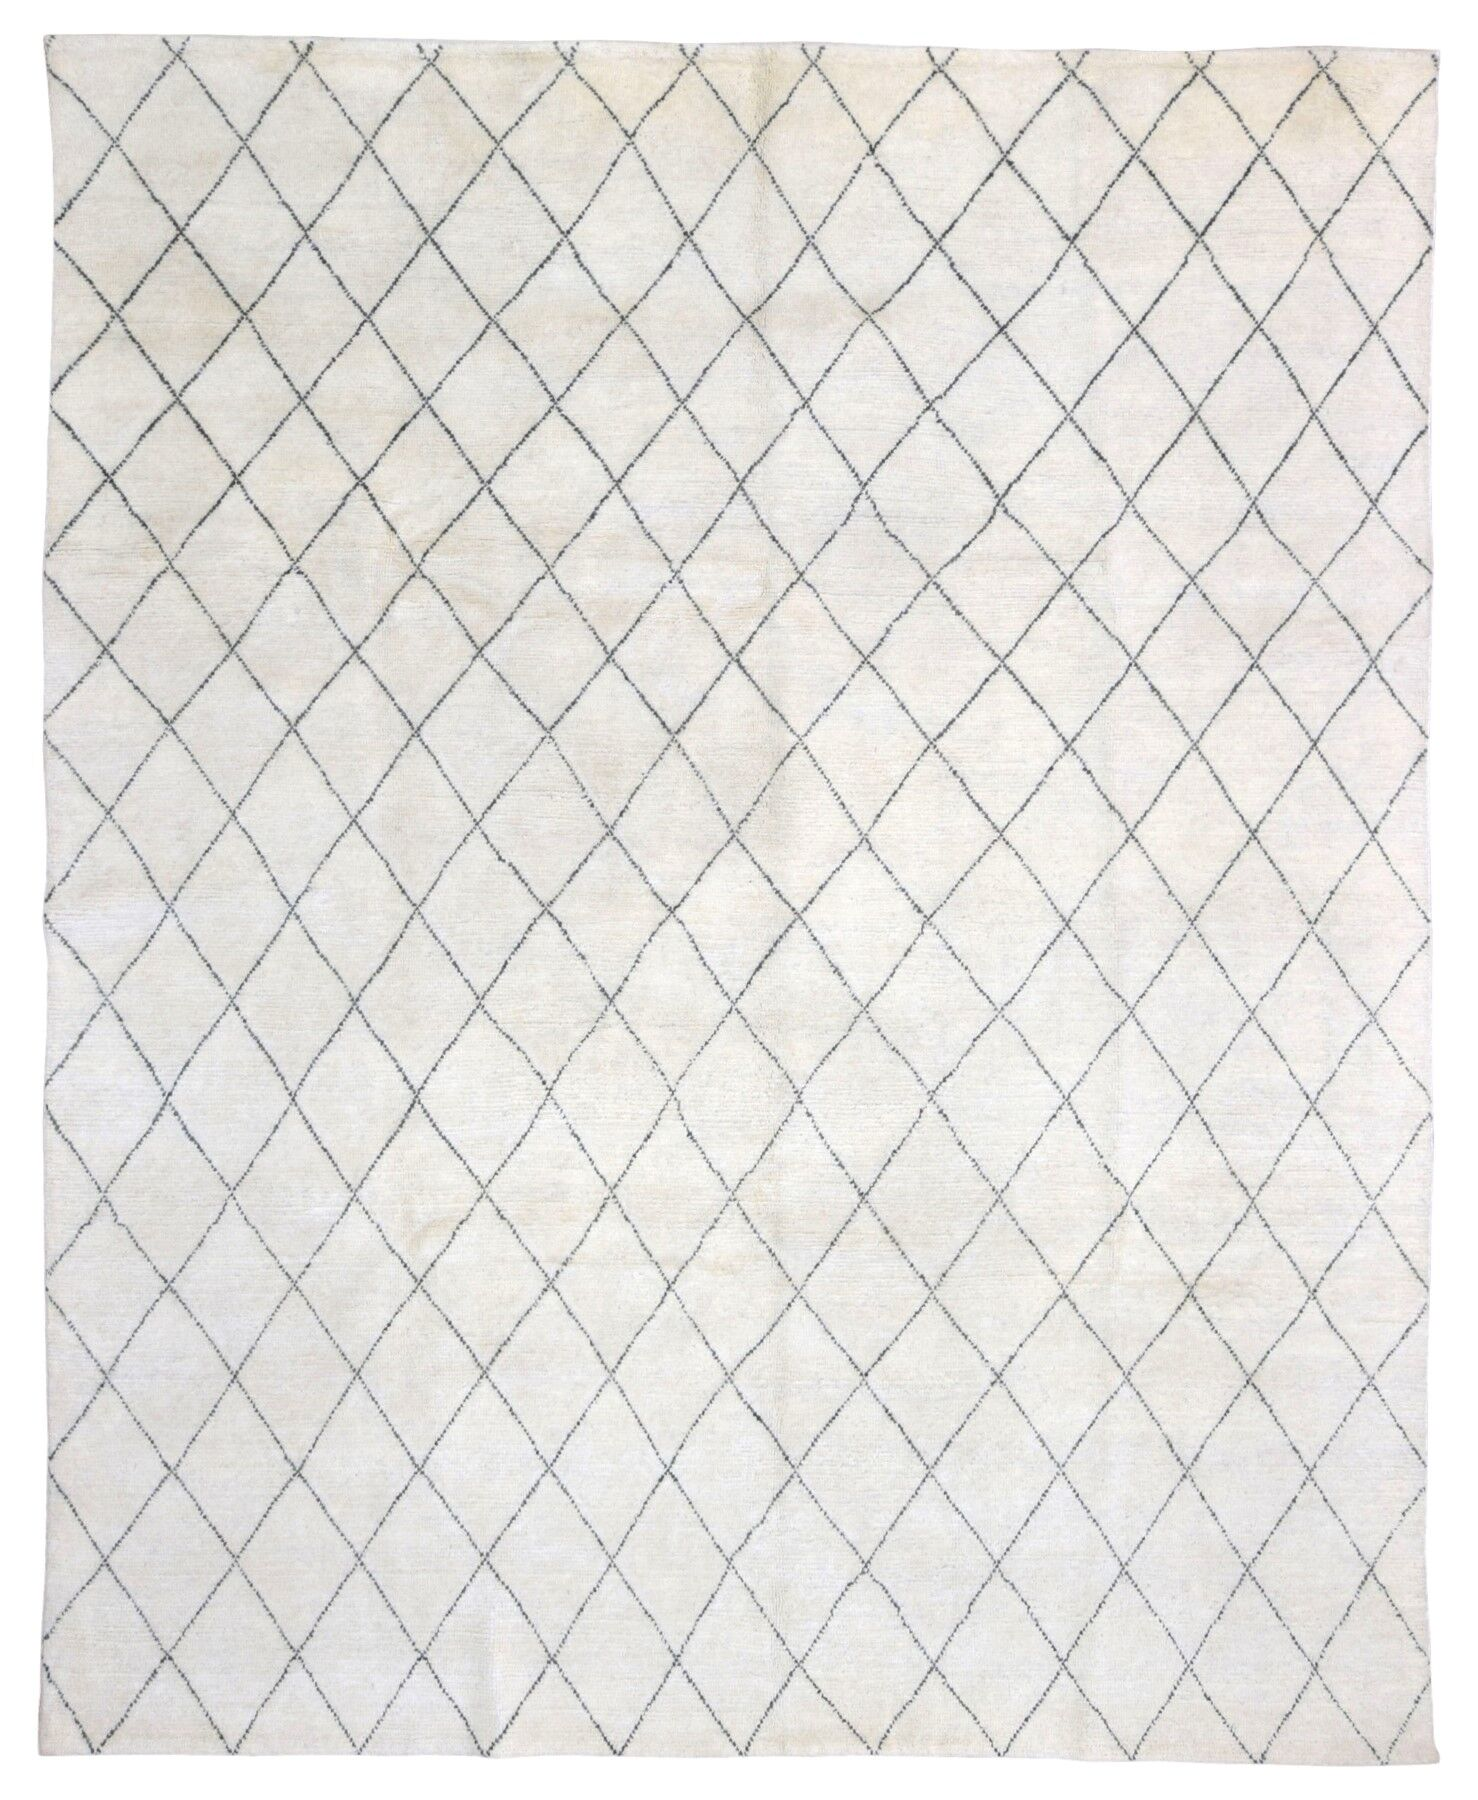 One-of-a-Kind Pasquale Hand-Woven Wool Cream/Black Area Rug